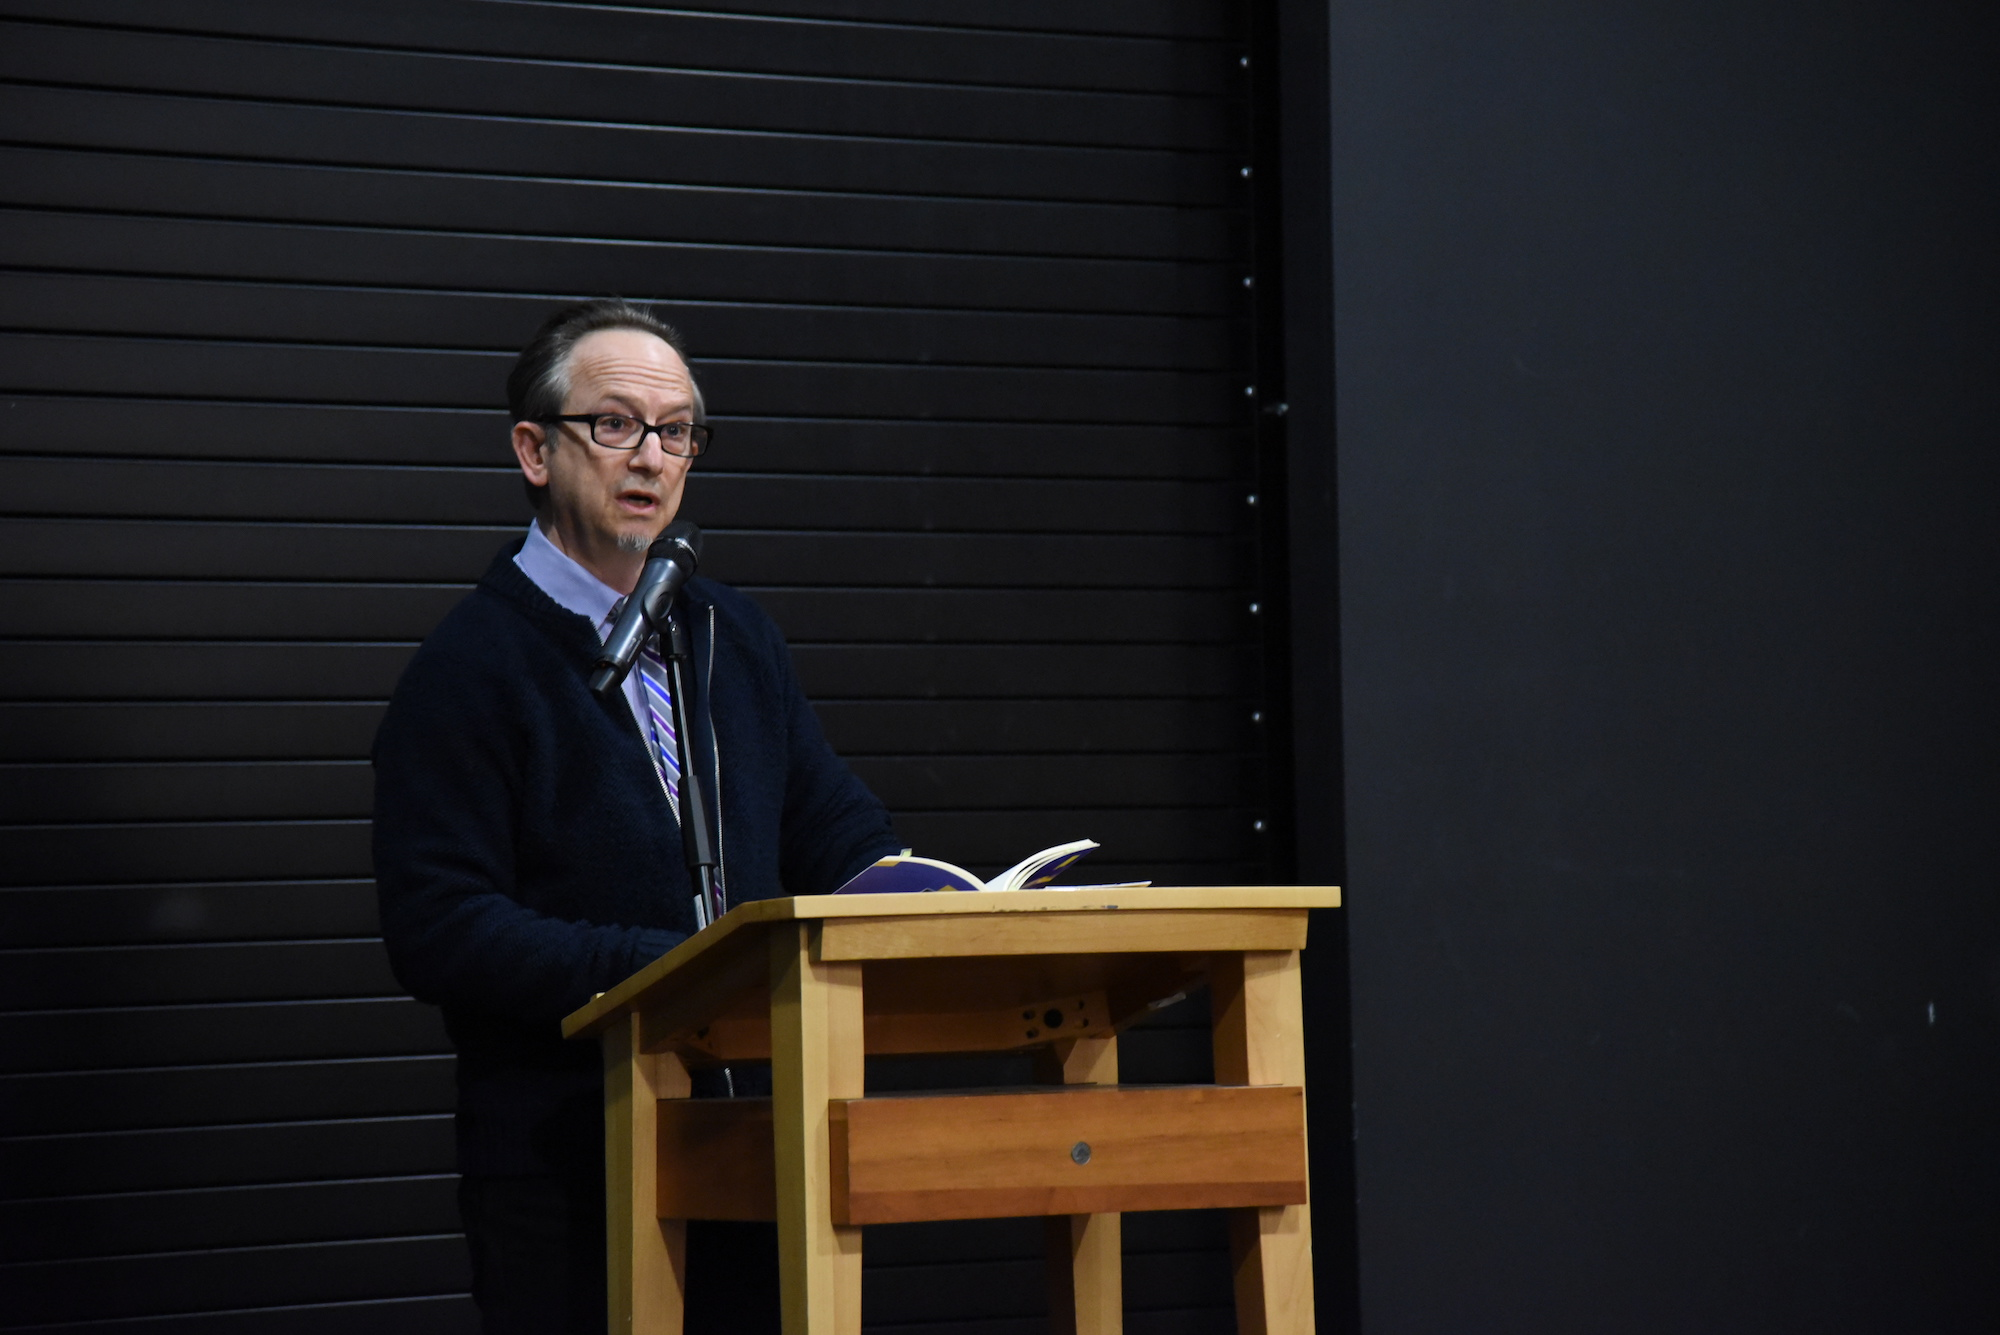 """Barnes and Noble in Storrs Center was full of students and professors listening to author and poet Alan Michael Parker read some of his own publications.He read some of his new poems from """"The Ladder."""" (Charlotte Lao/The Daily Campus)"""